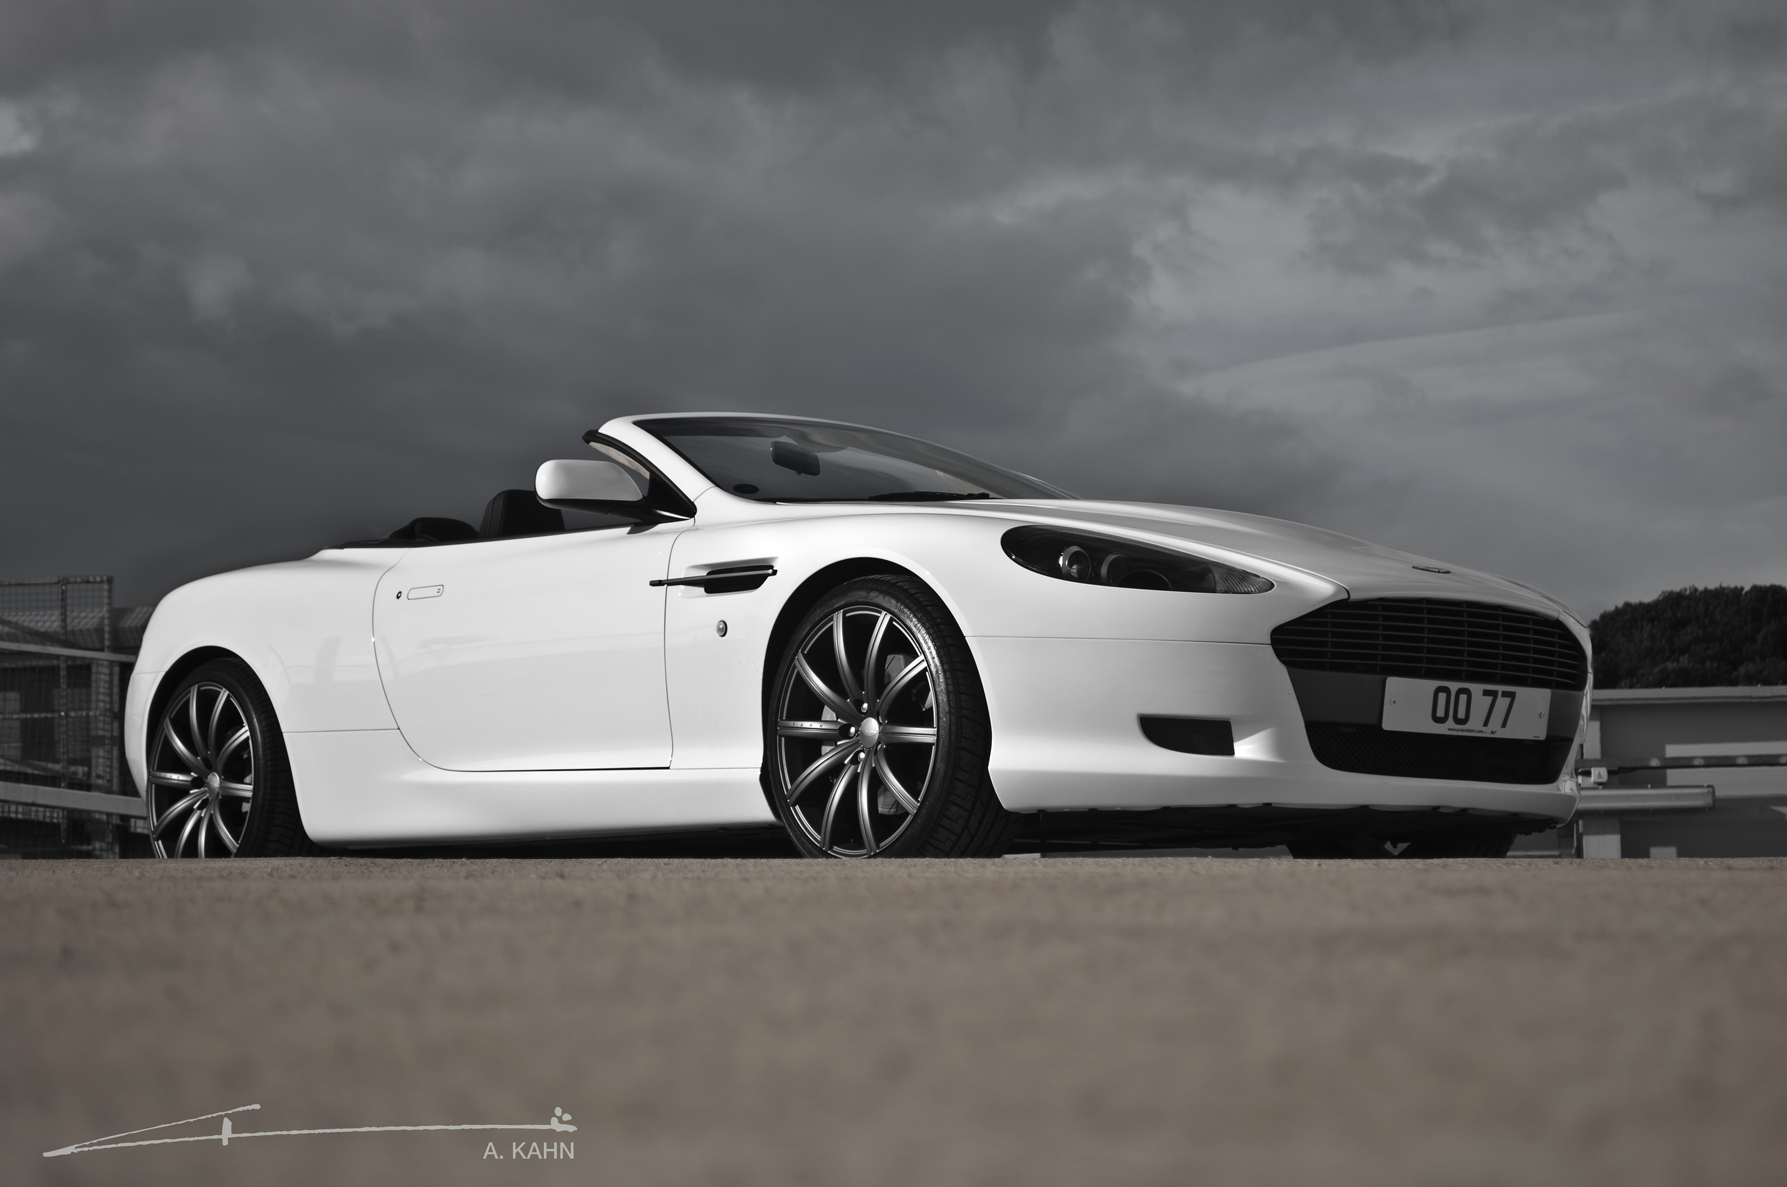 aston martin db9 voltane 2008 images